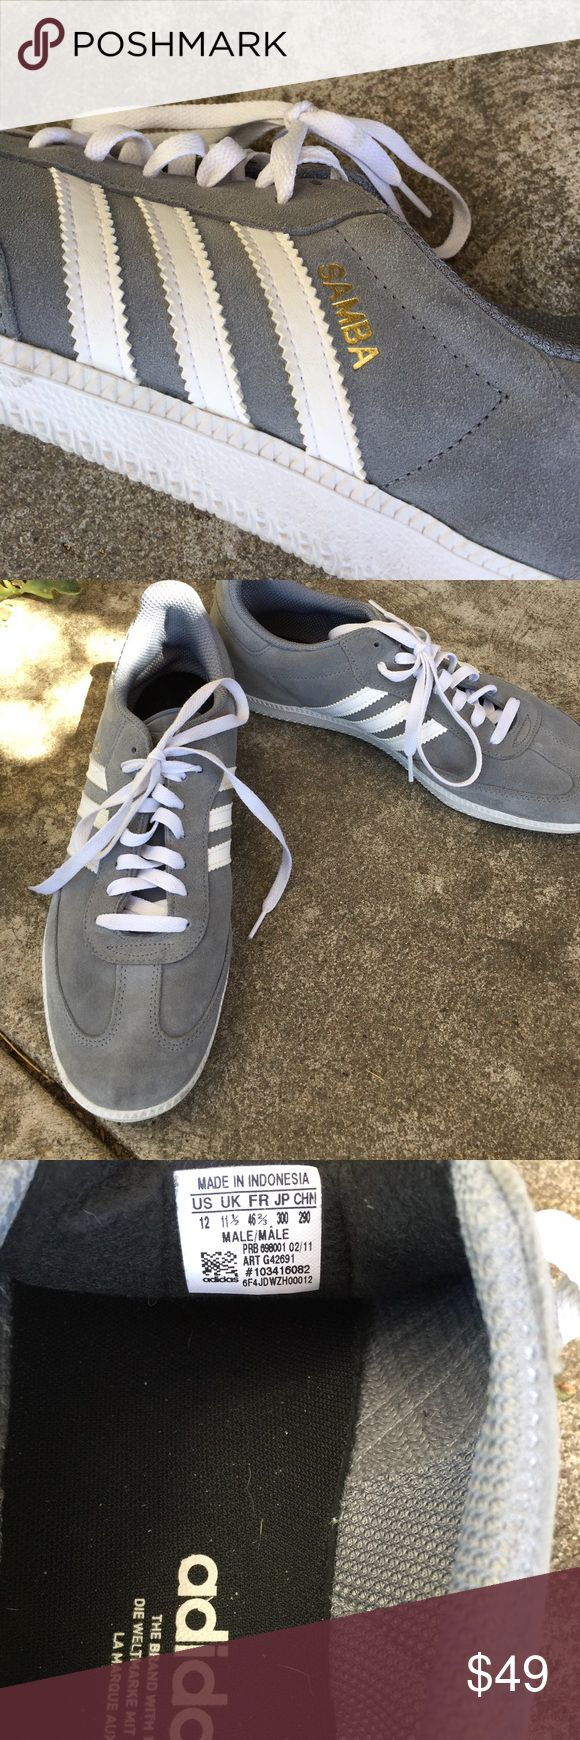 Men's gray Adidas Samba Trainers suede size 12 Like new. Size 12. Adidas Samba Trainers in grey suede with white stripes. Adidas Shoes Sneakers